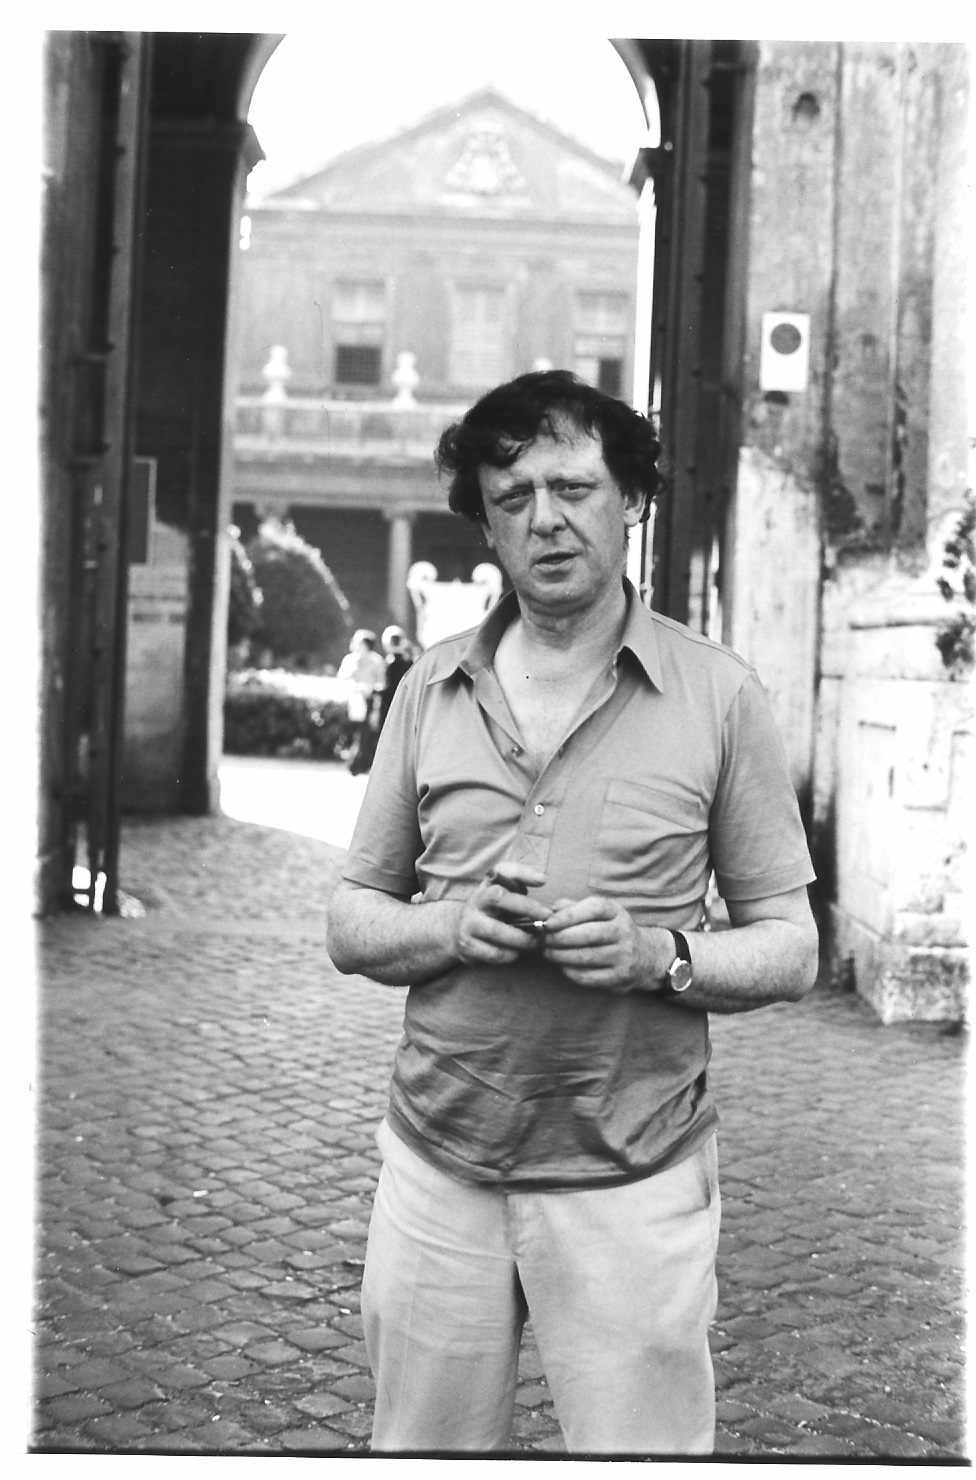 Anthony Burgess in the early 1970s